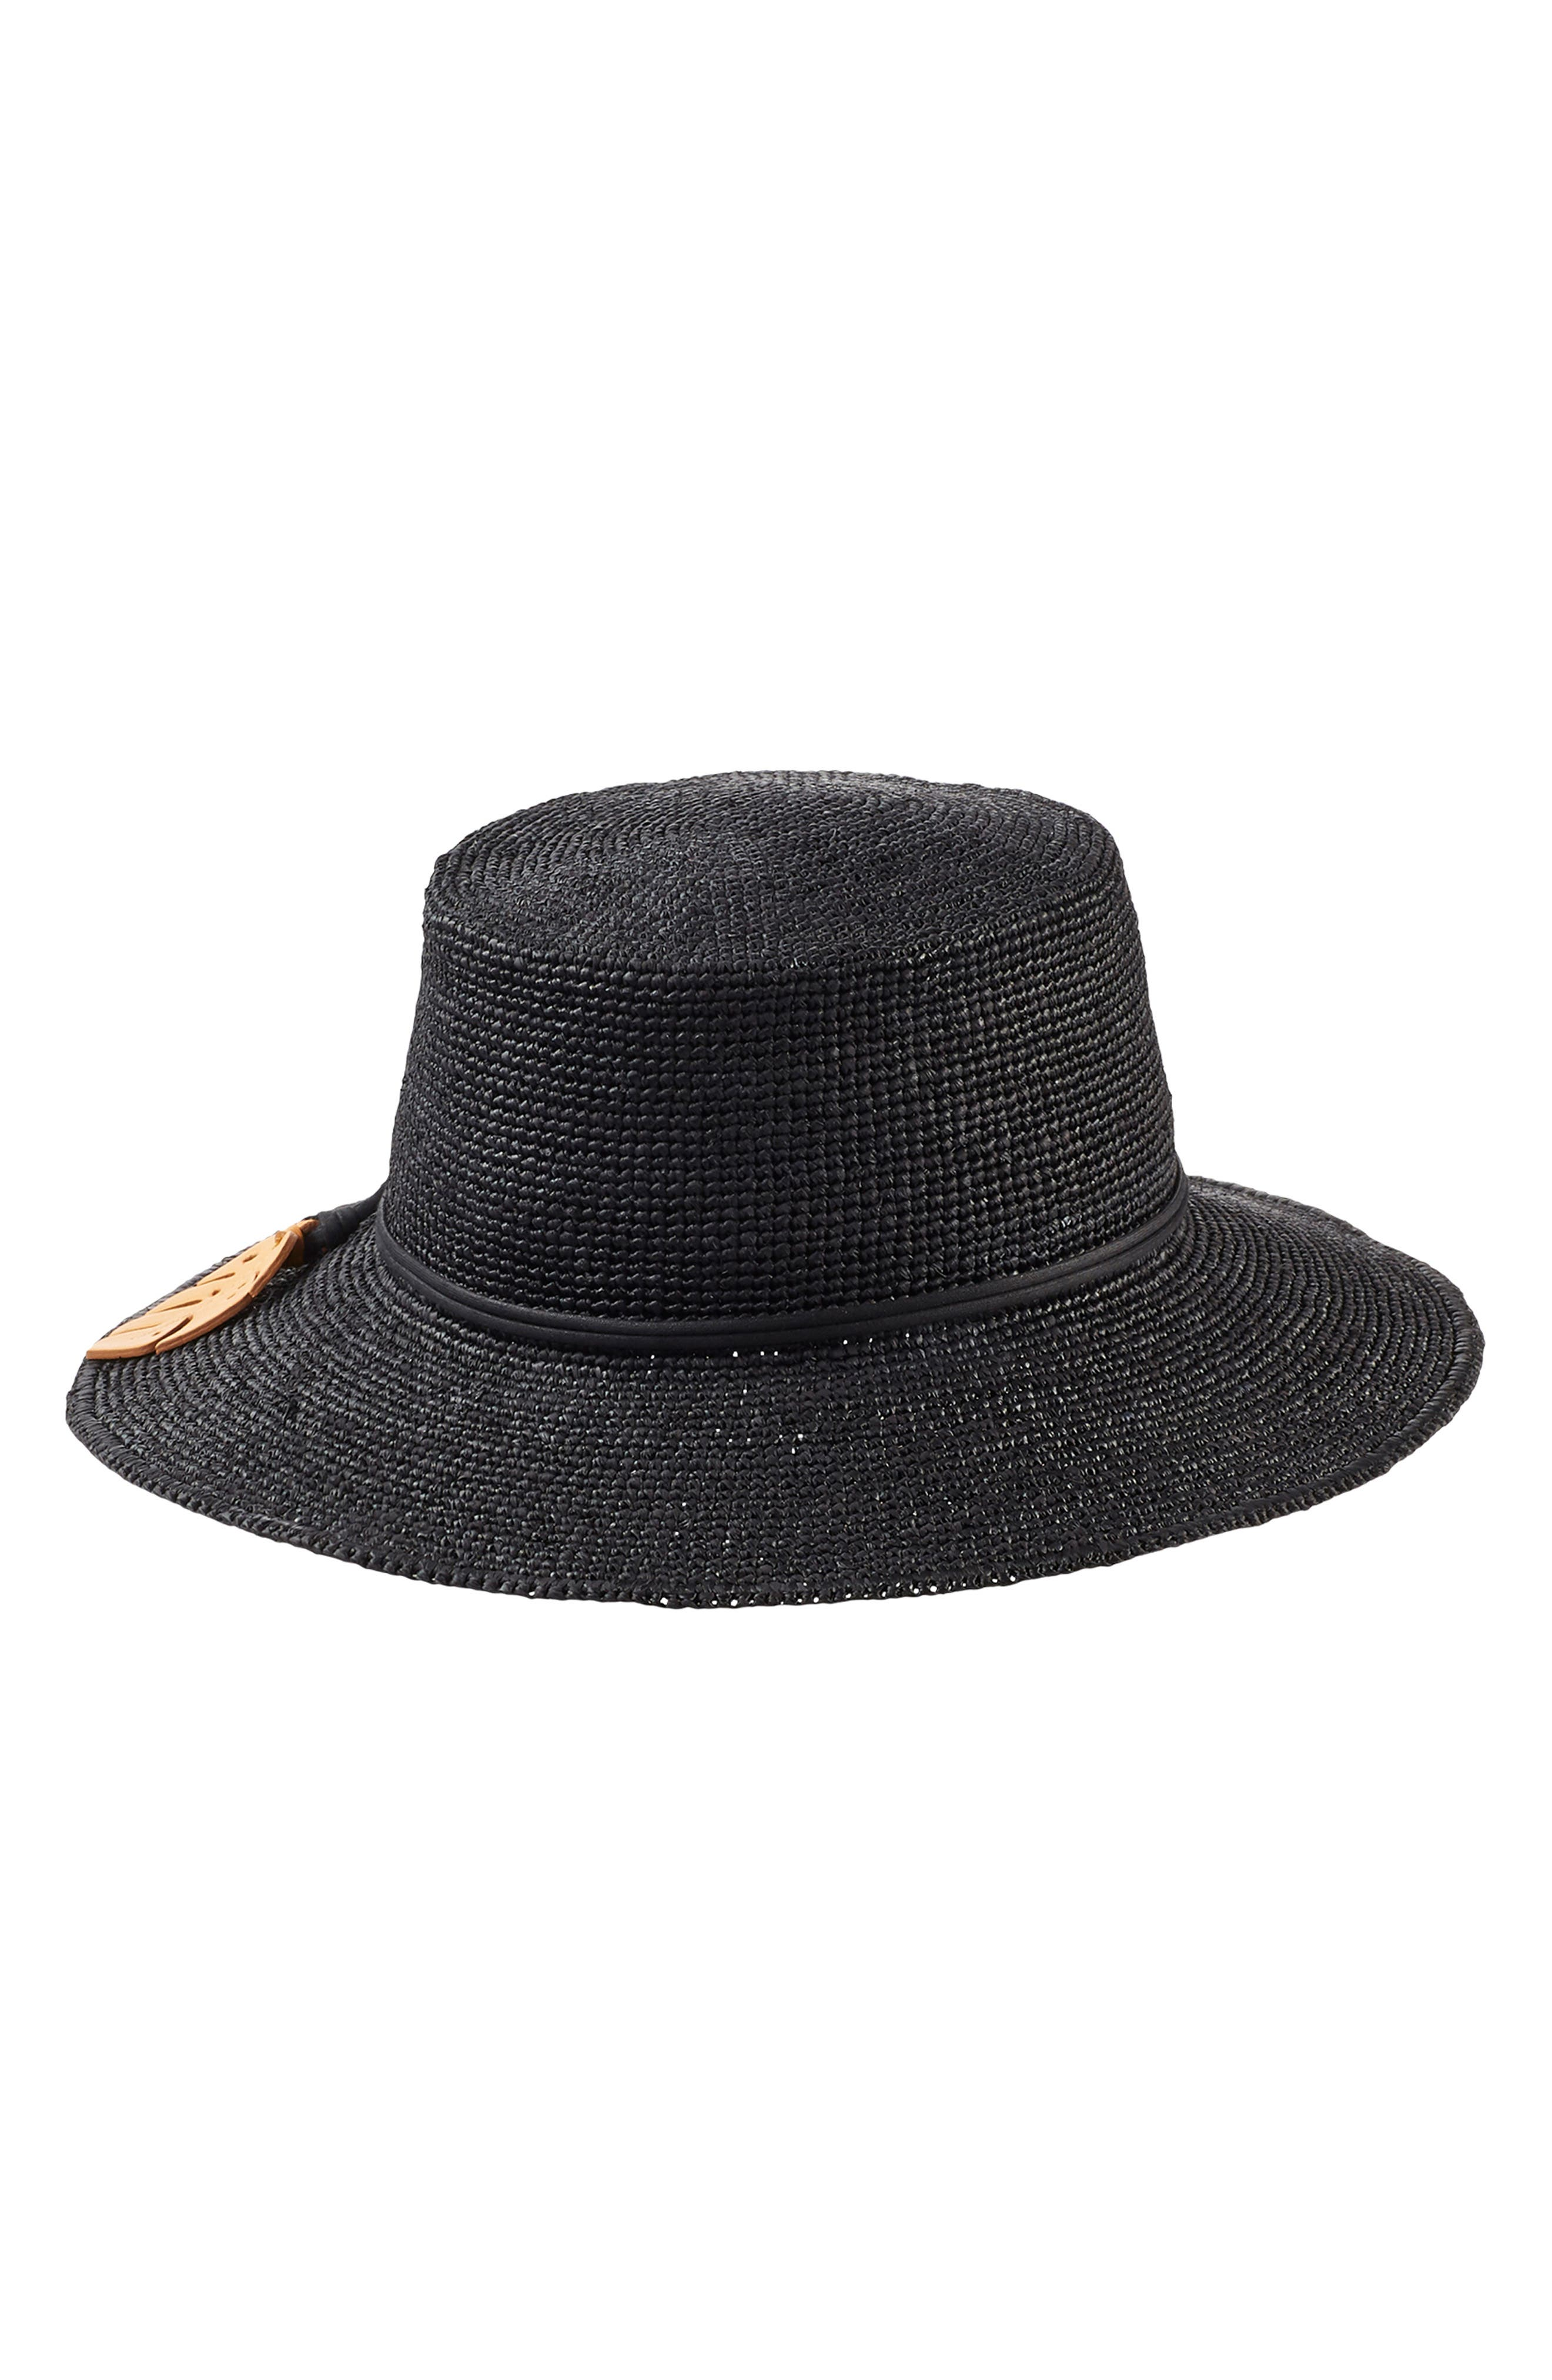 Tapered Brim Raffia Hat,                             Alternate thumbnail 2, color,                             CHARCOAL/ CONGO YELLOW